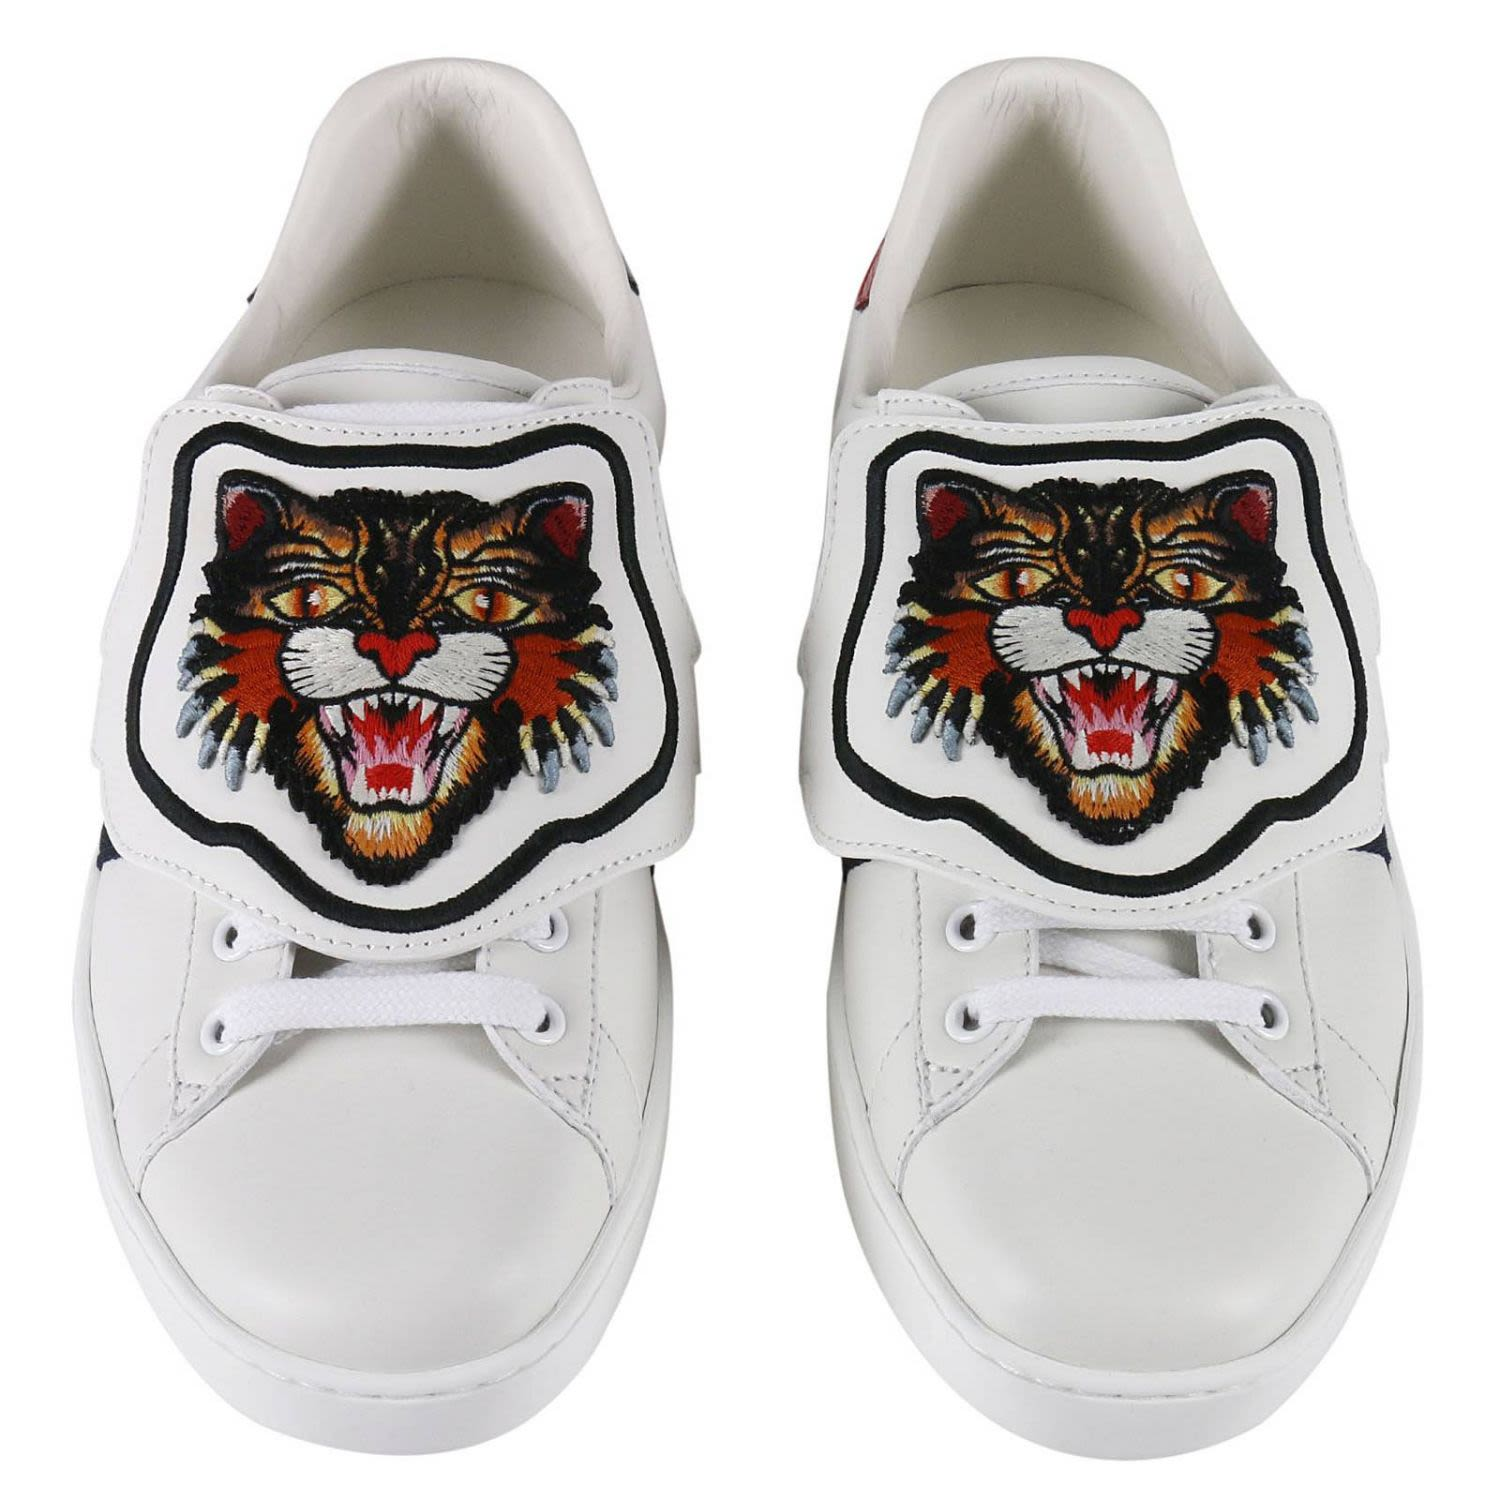 5550291499f Gucci Sneakers Ace Sneakers With Embroidered Angry Cat Removable Patches  And Web Bands - White - 7741167